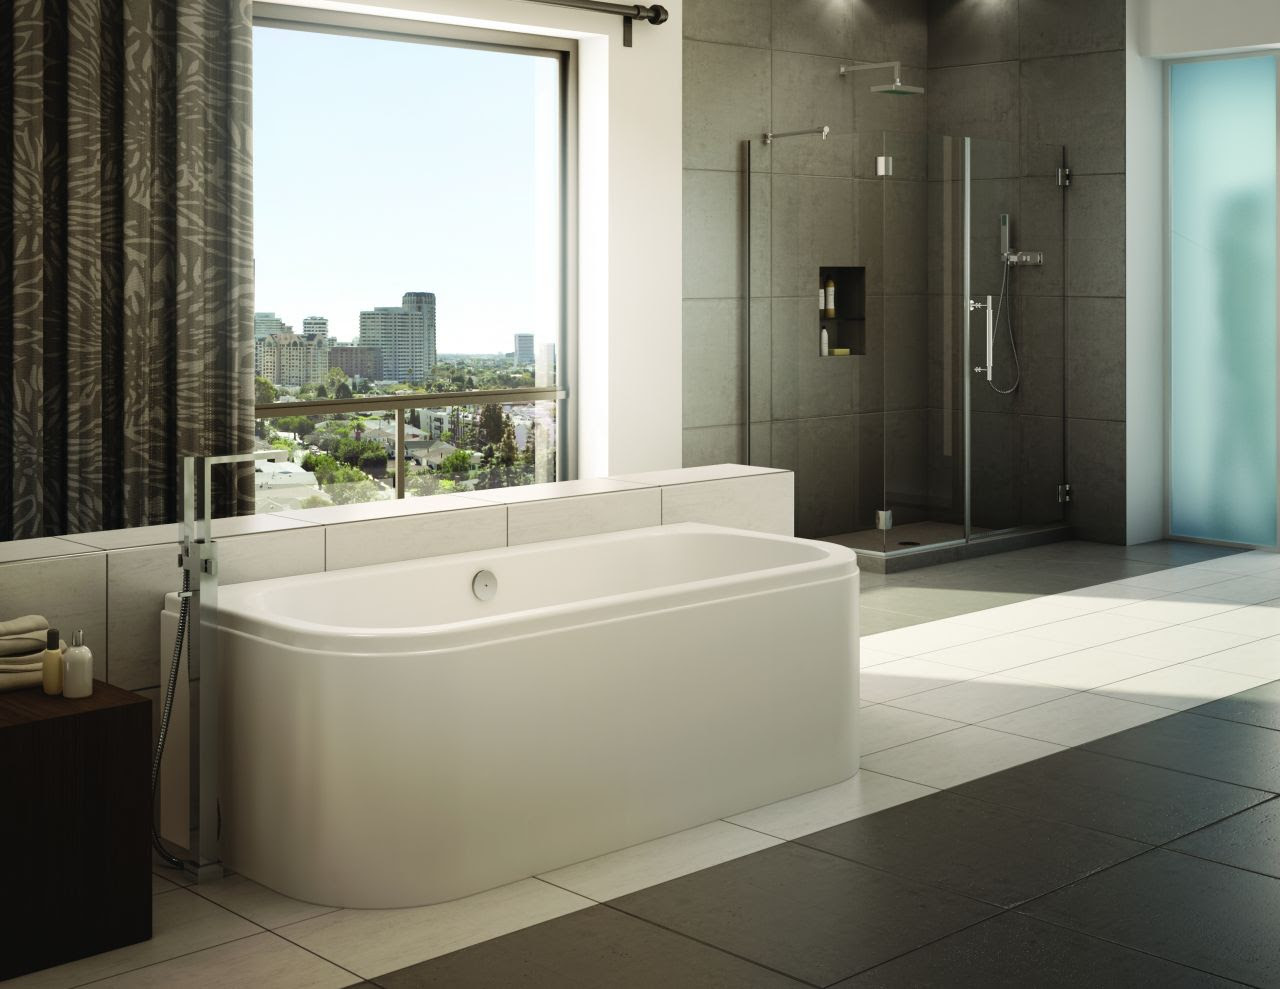 2014 Bathroom trends and remodeling ideas Cleveland ...